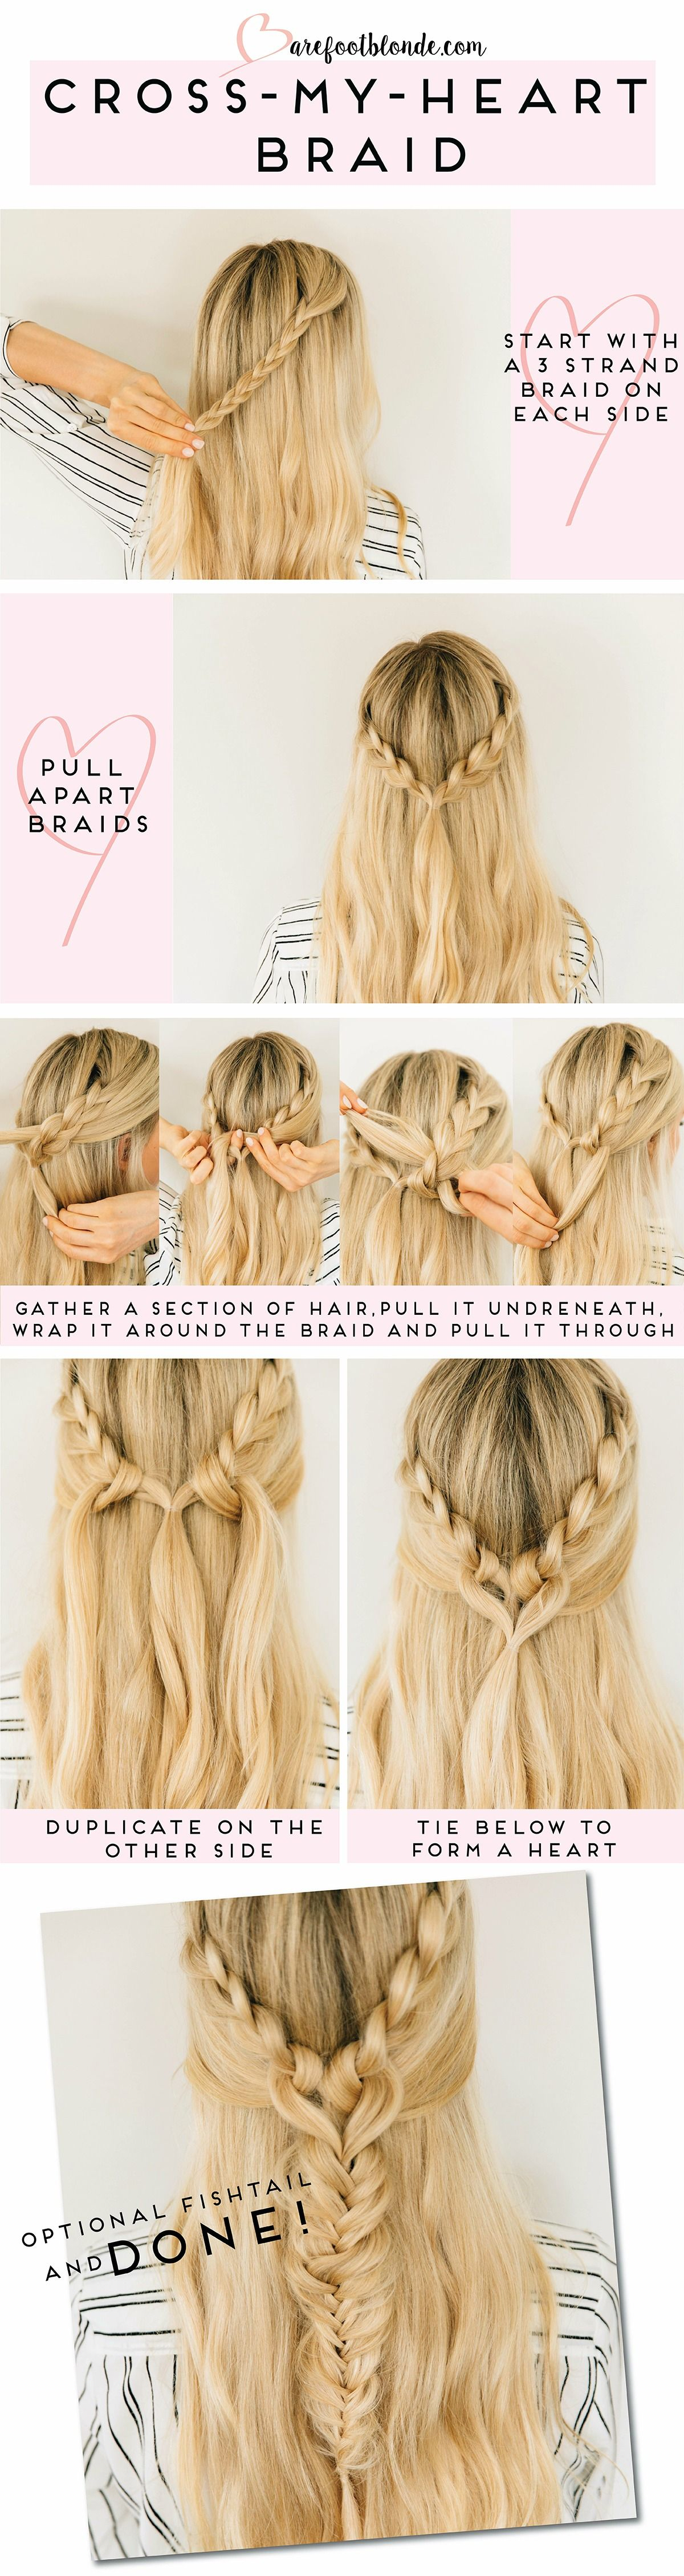 Cross my heart braid pretty diy hair idea pinterest heart